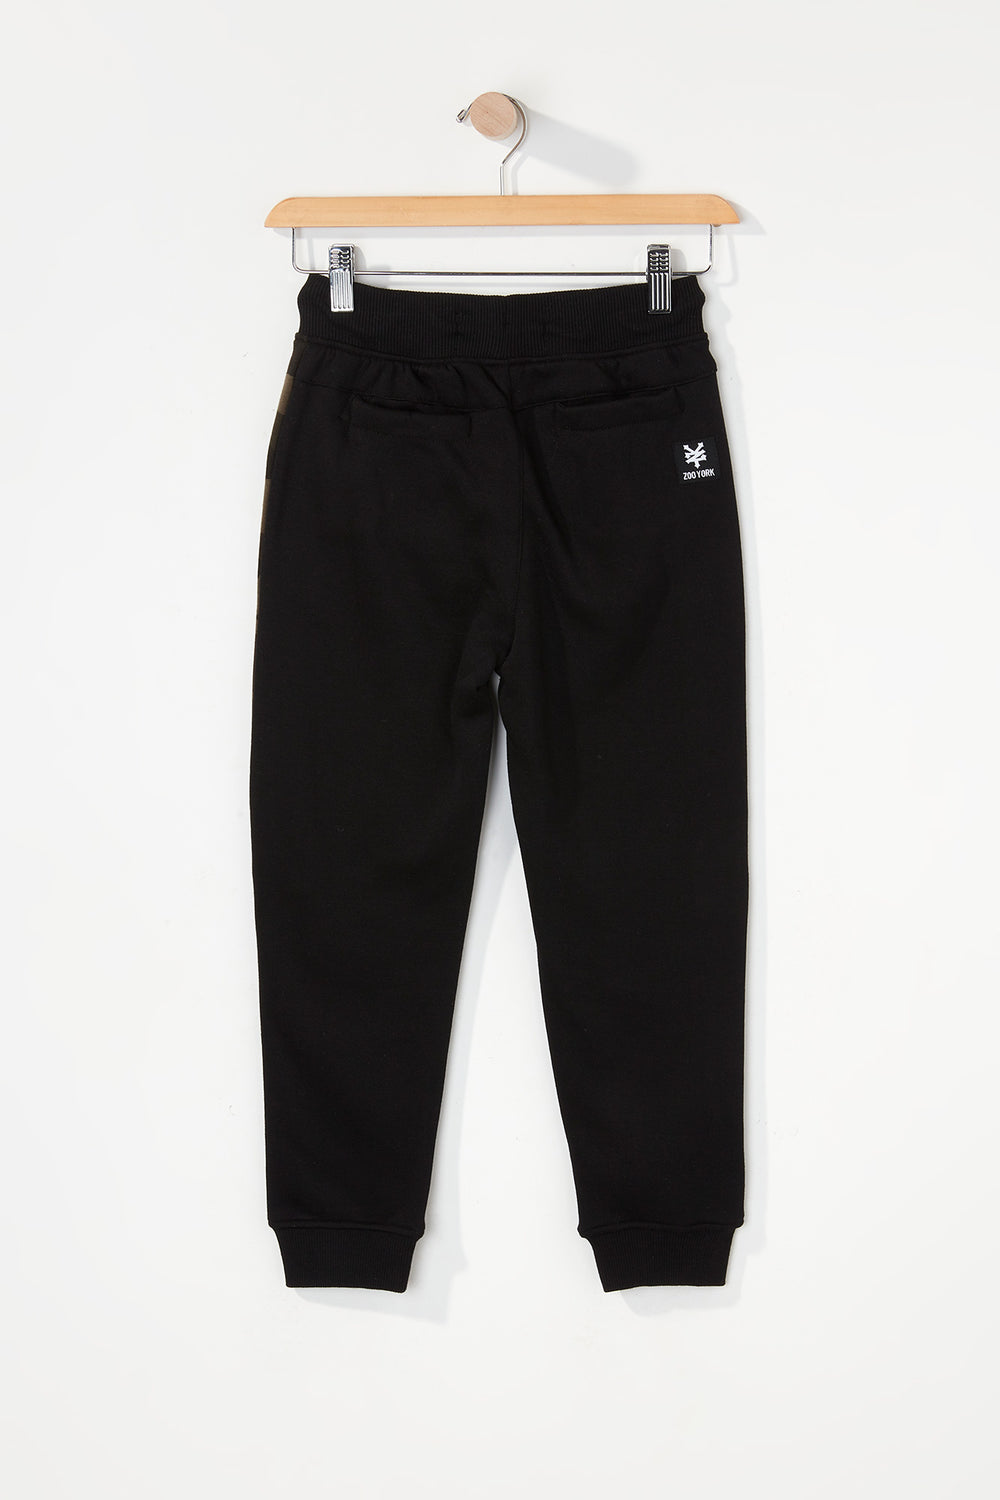 Zoo York Boys Camo Colour Block Jogger Black